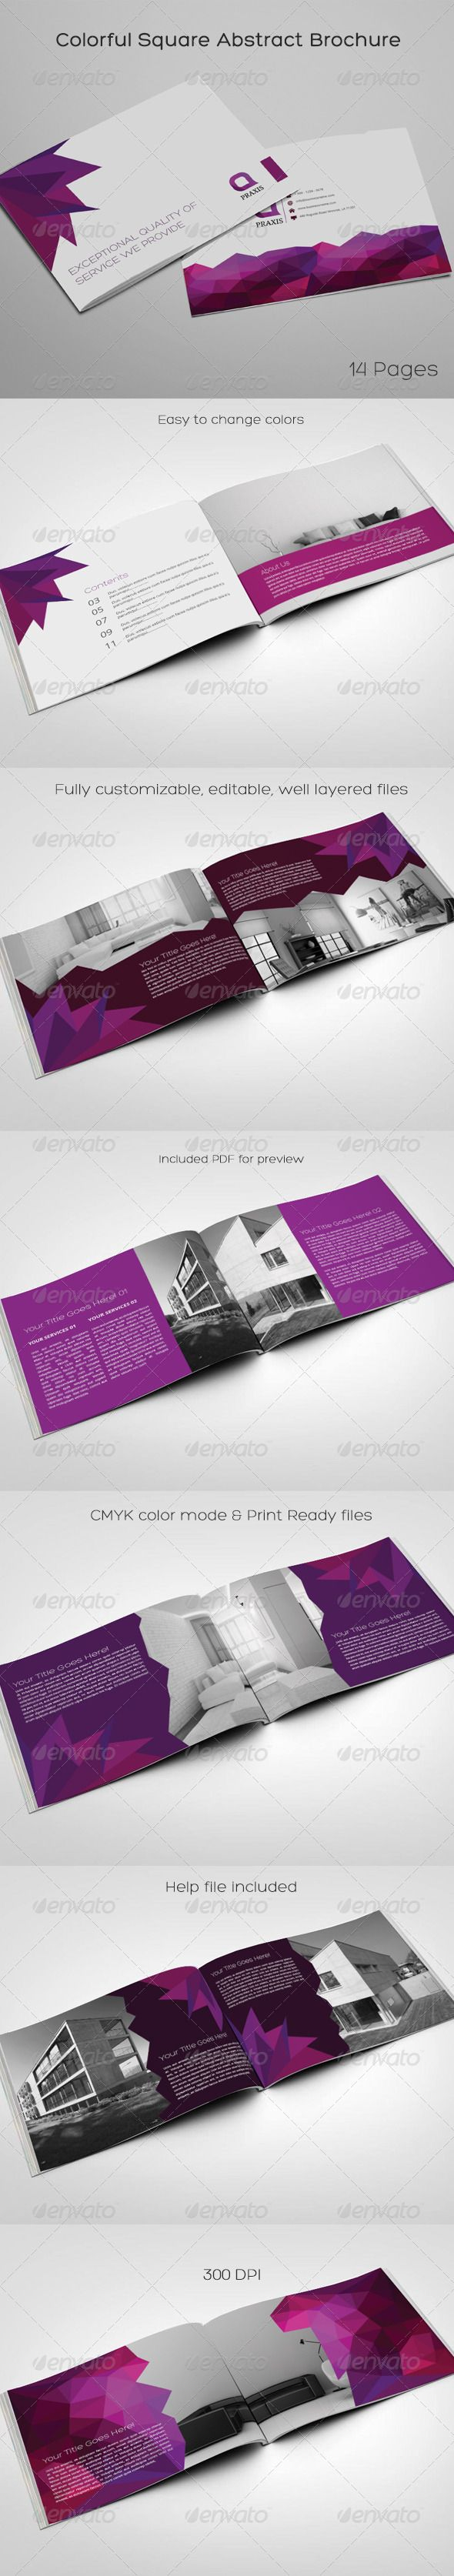 Colorful Square Abstract Brochure — InDesign INDD #modern #minimal • Available here → https://graphicriver.net/item/colorful-square-abstract-brochure/8594835?ref=pxcr